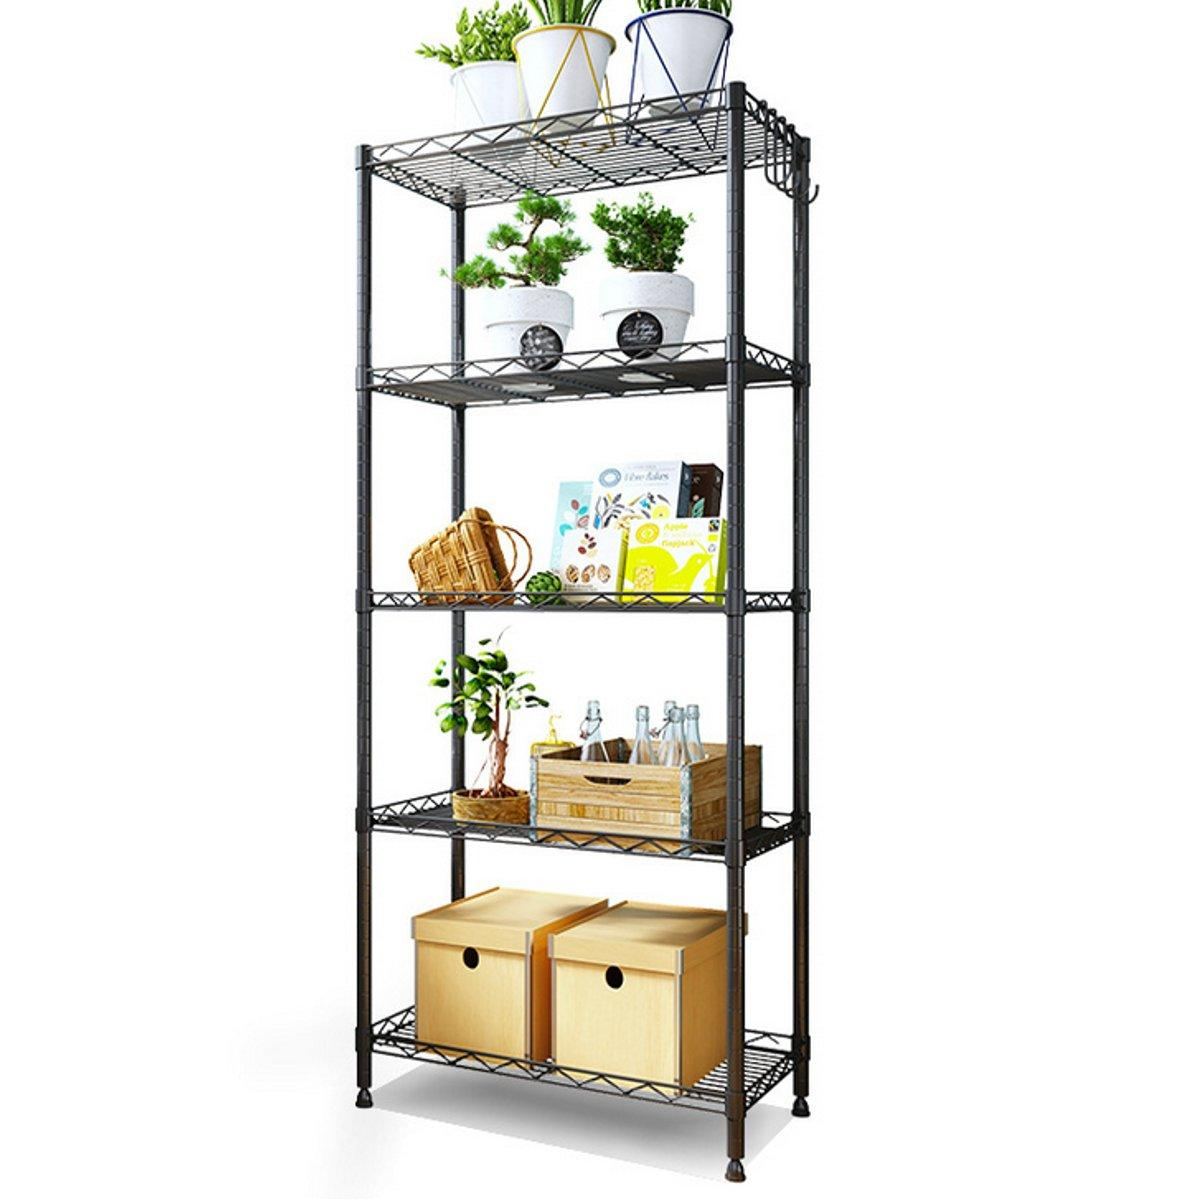 Steel Wire Shelving Unit Garage Storage Shelves Large Black Metal Rack Storage Shelf Organizer Adjustable 5 Tier Heavy Duty Shelf